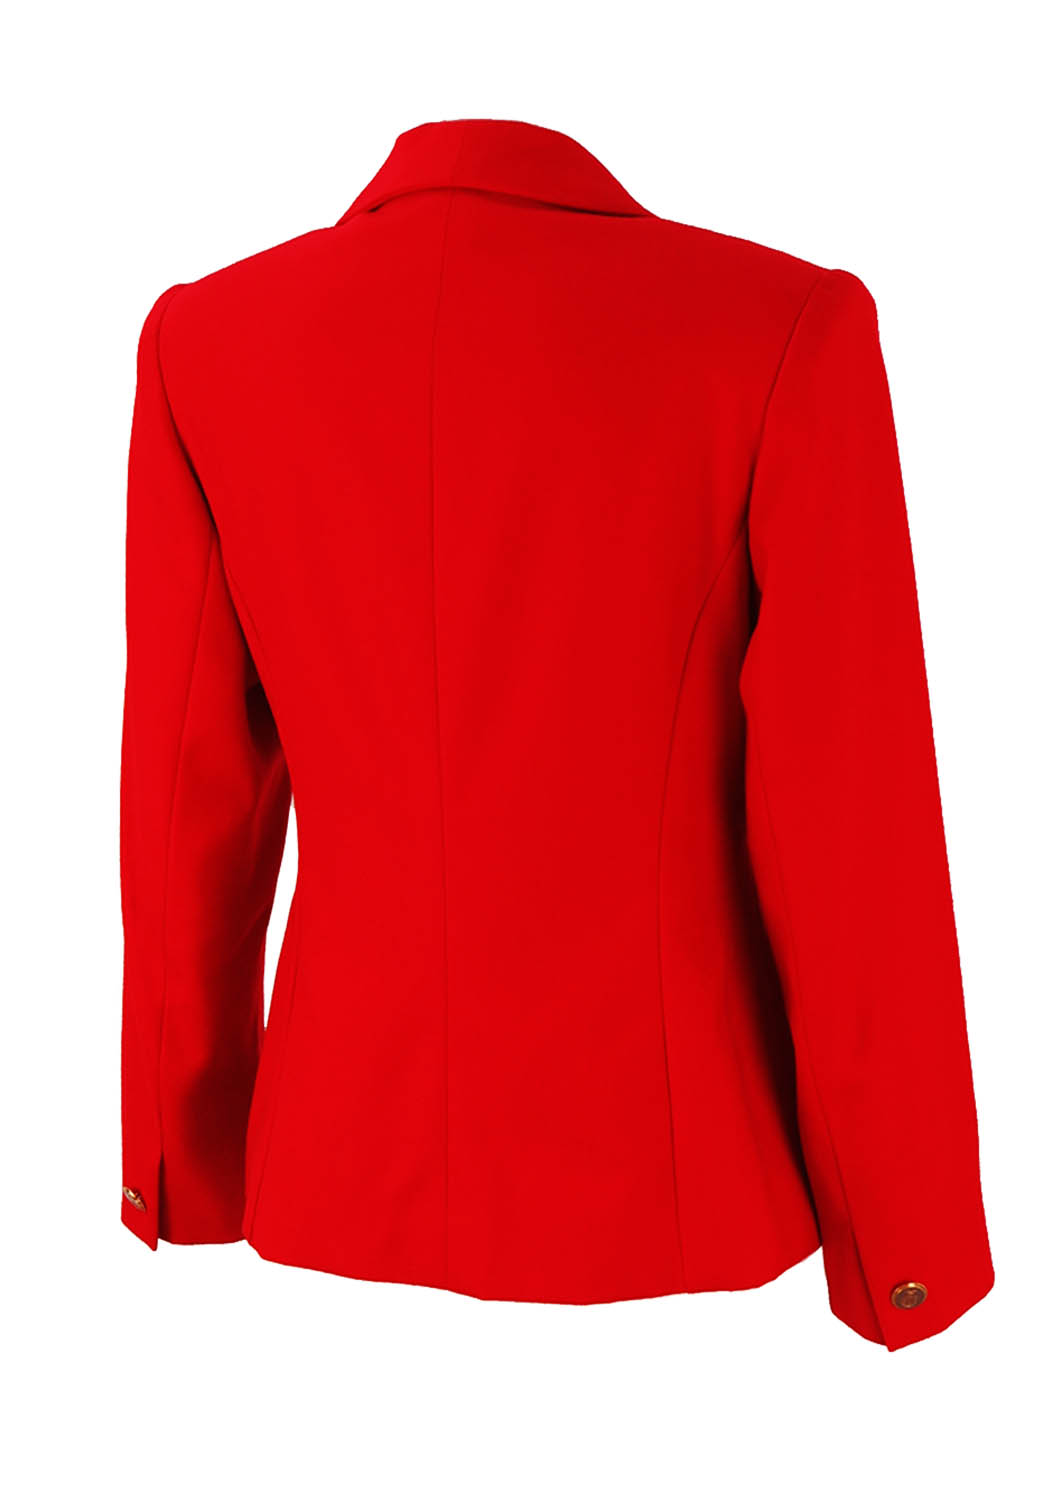 Military Style Fitted Red Jacket With Gold Buttons M